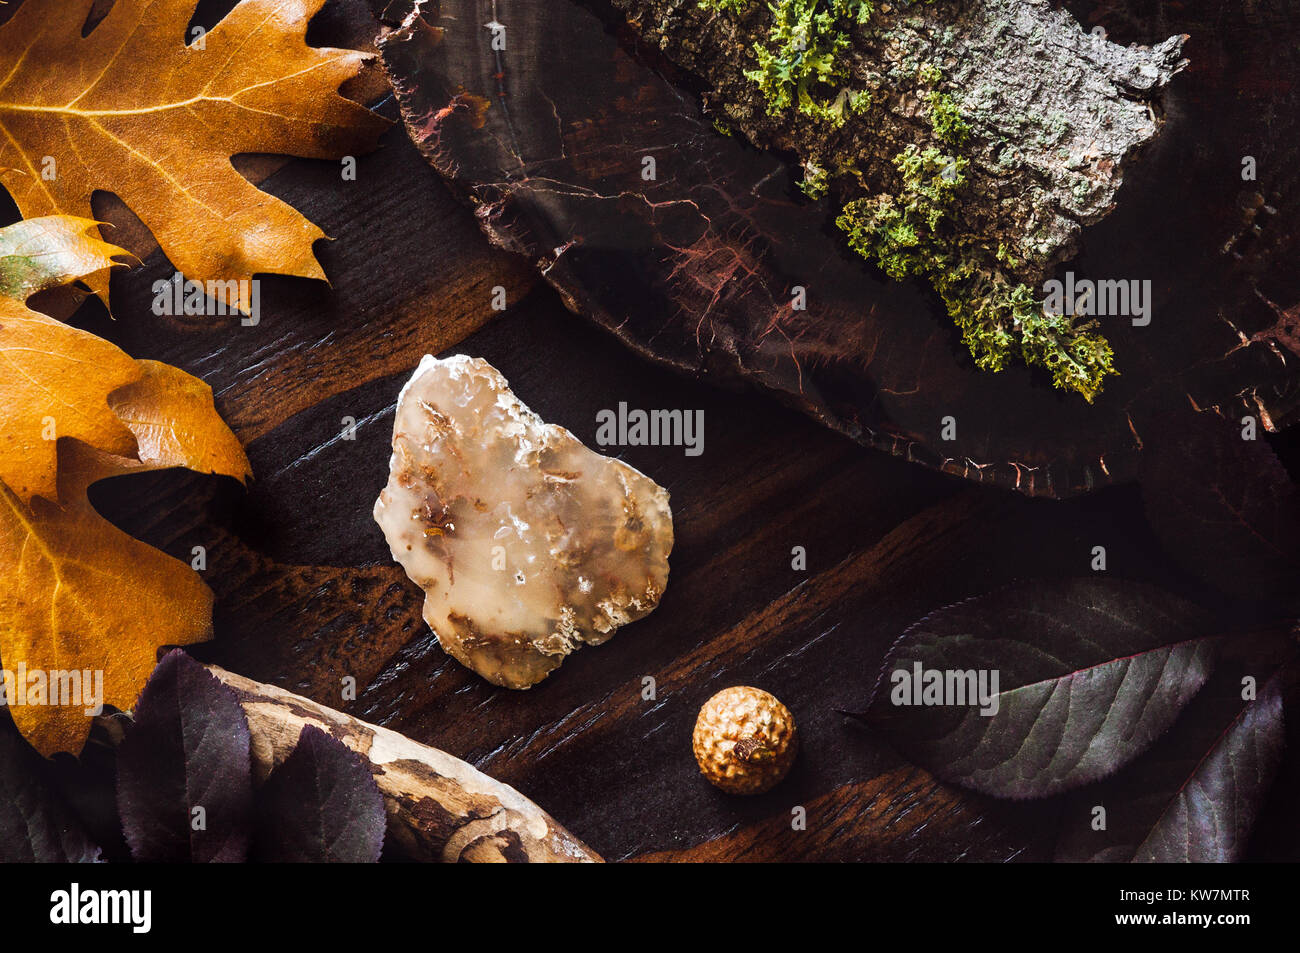 A Collection of Fallen Leaves, Moss, Bark, and Agate - Stock Image